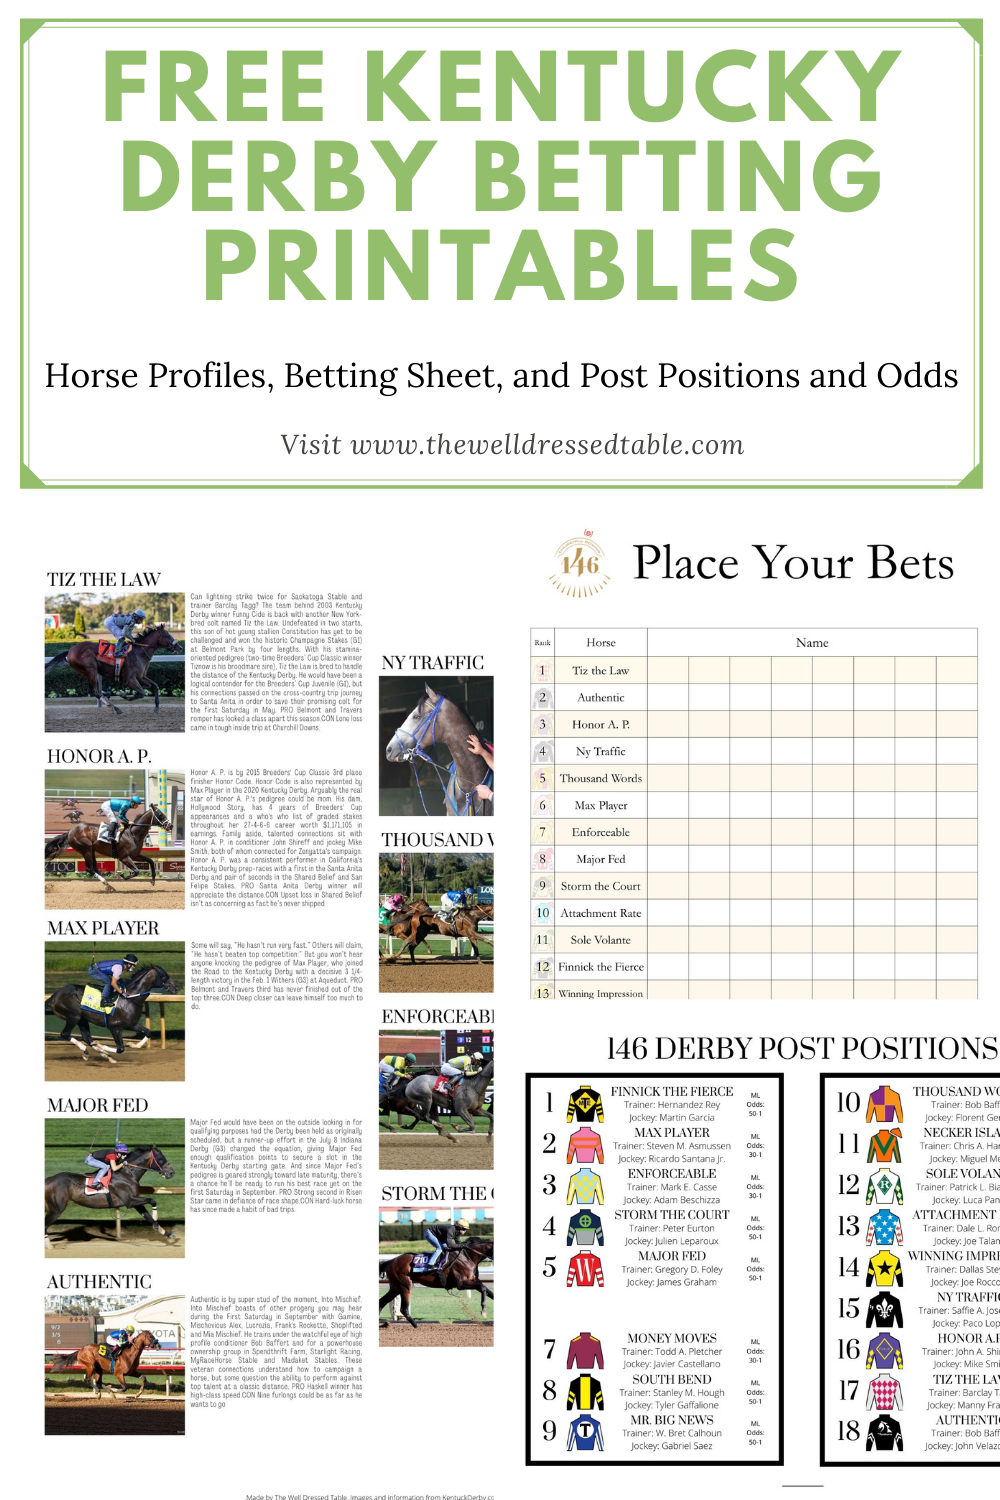 Kentucky Derby 25 Printables   The Well Dressed Table   Derby ...